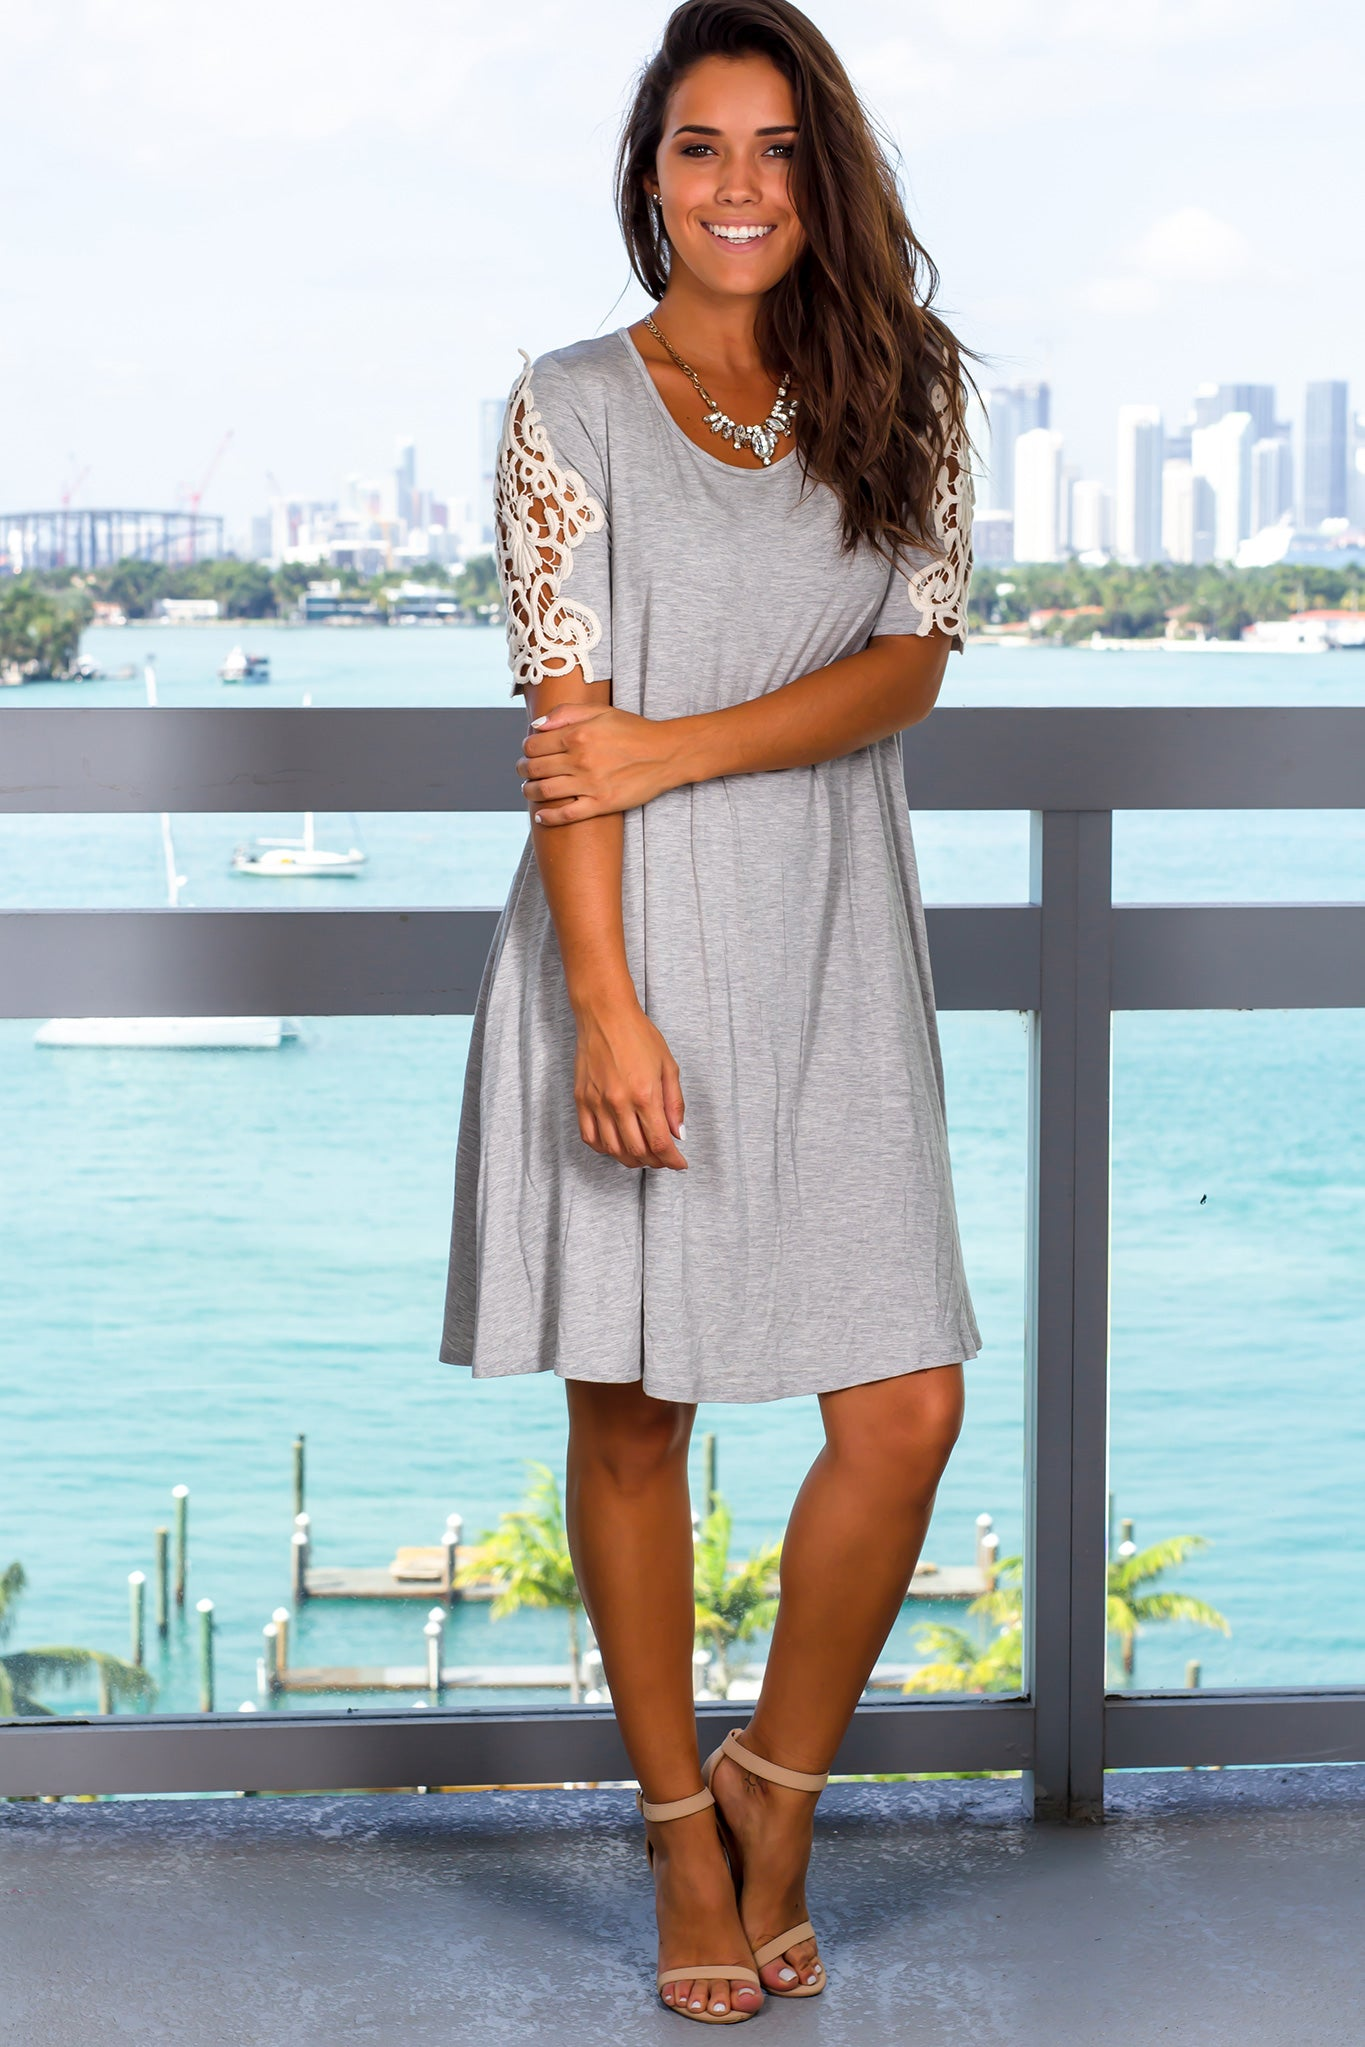 Heather Gray Short Dress with Crochet Sleeves